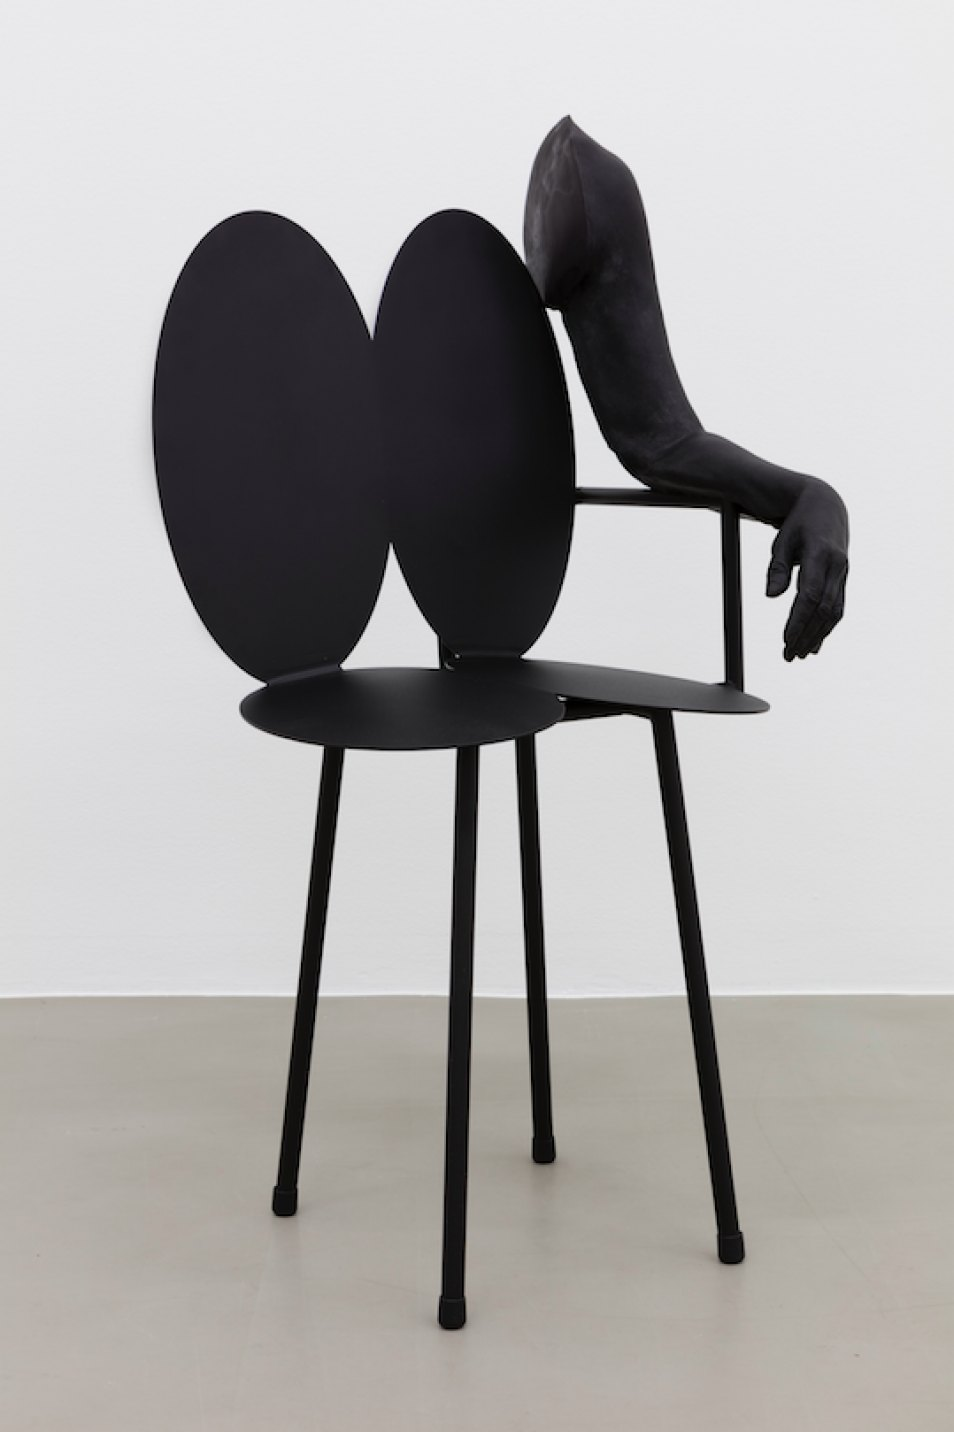 Dominique Gonzalez-Foerster & Manuel Raeder, <em>BLACK MOUNTAIN left arm, </em>2016, powder-coated steel, resin, acrylic paint, 100 × 53 × 47 cm - Mendes Wood DM